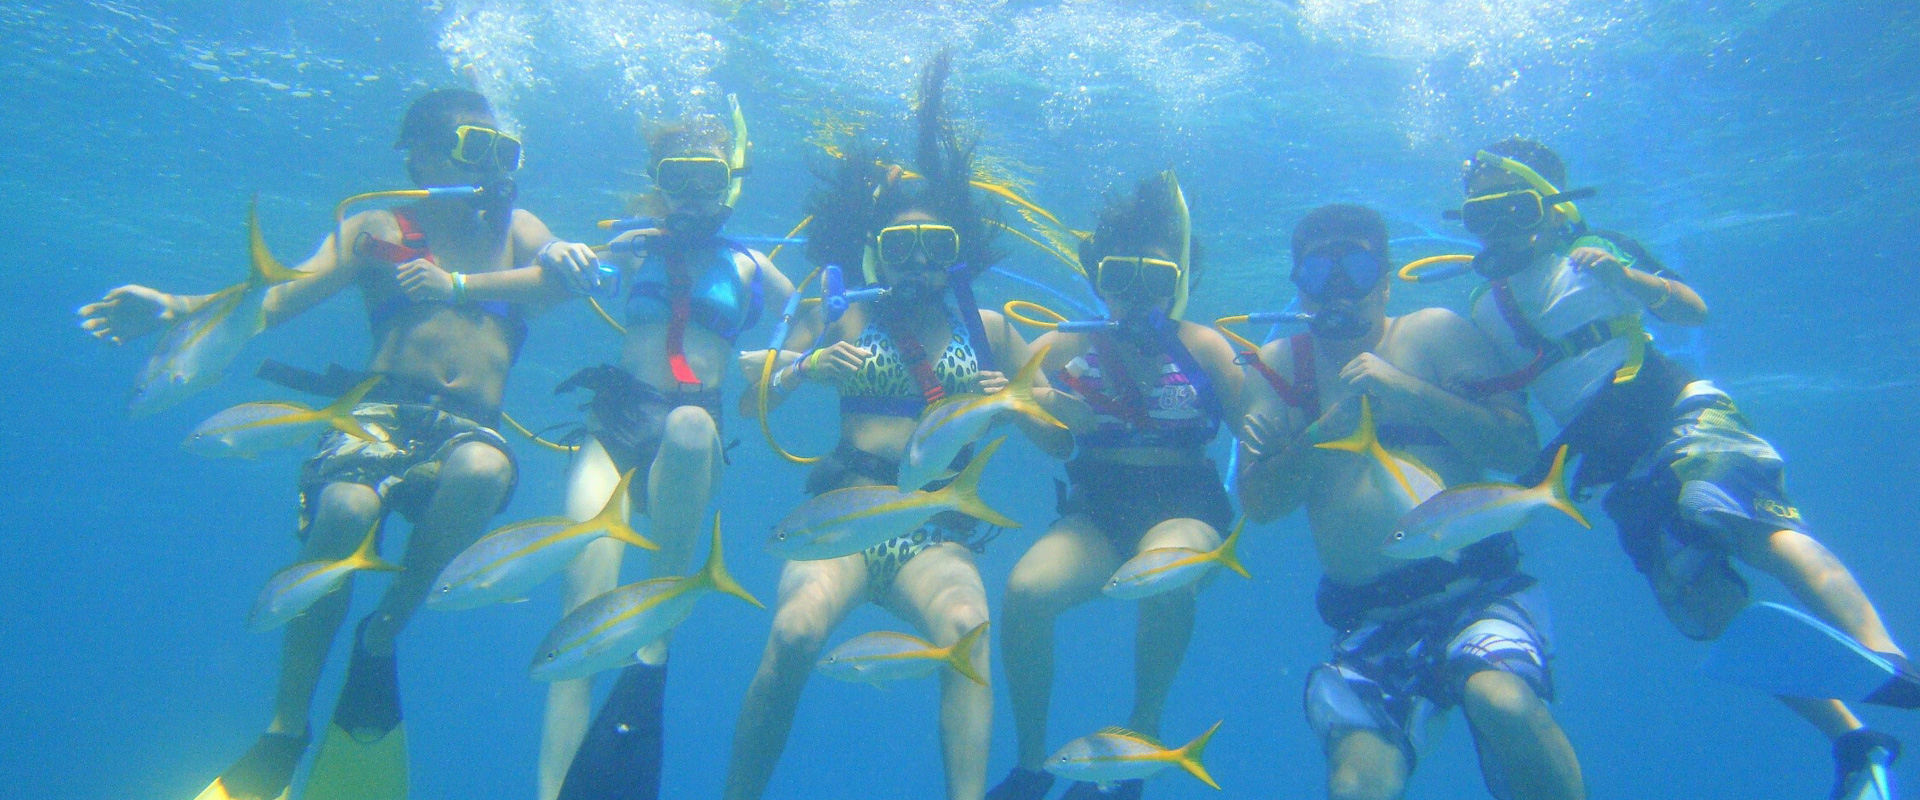 Snorkeling Tour in St. Kitts and Nevis